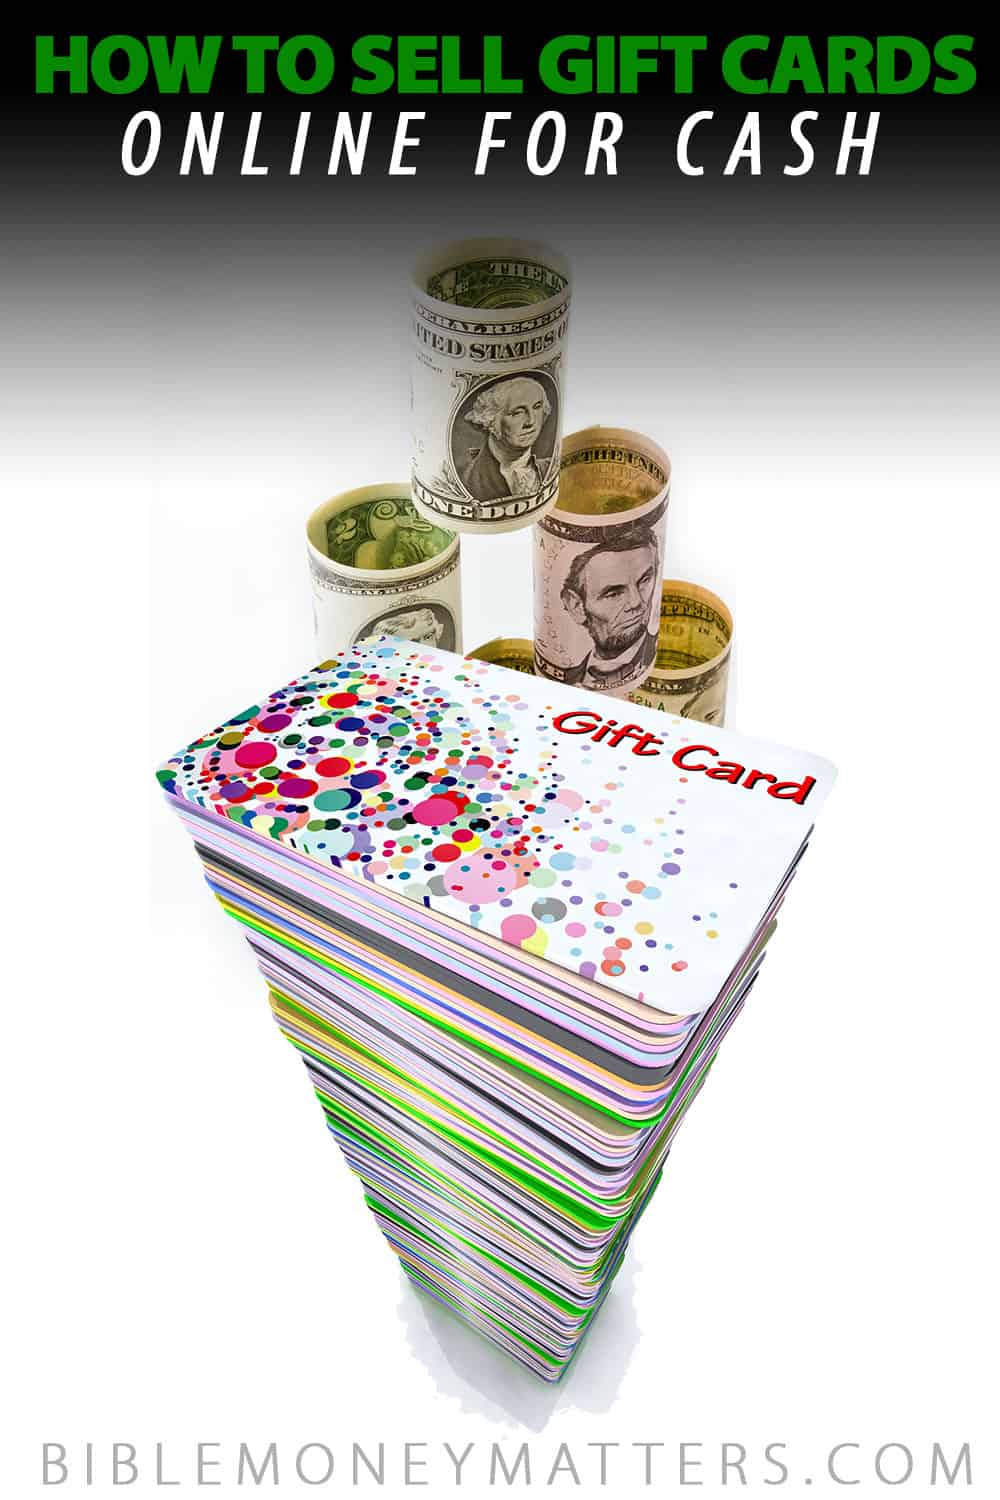 There are many different places to sell or trade your unwanted gift cards. Here are some of the best options to sell your gift cards for cash.